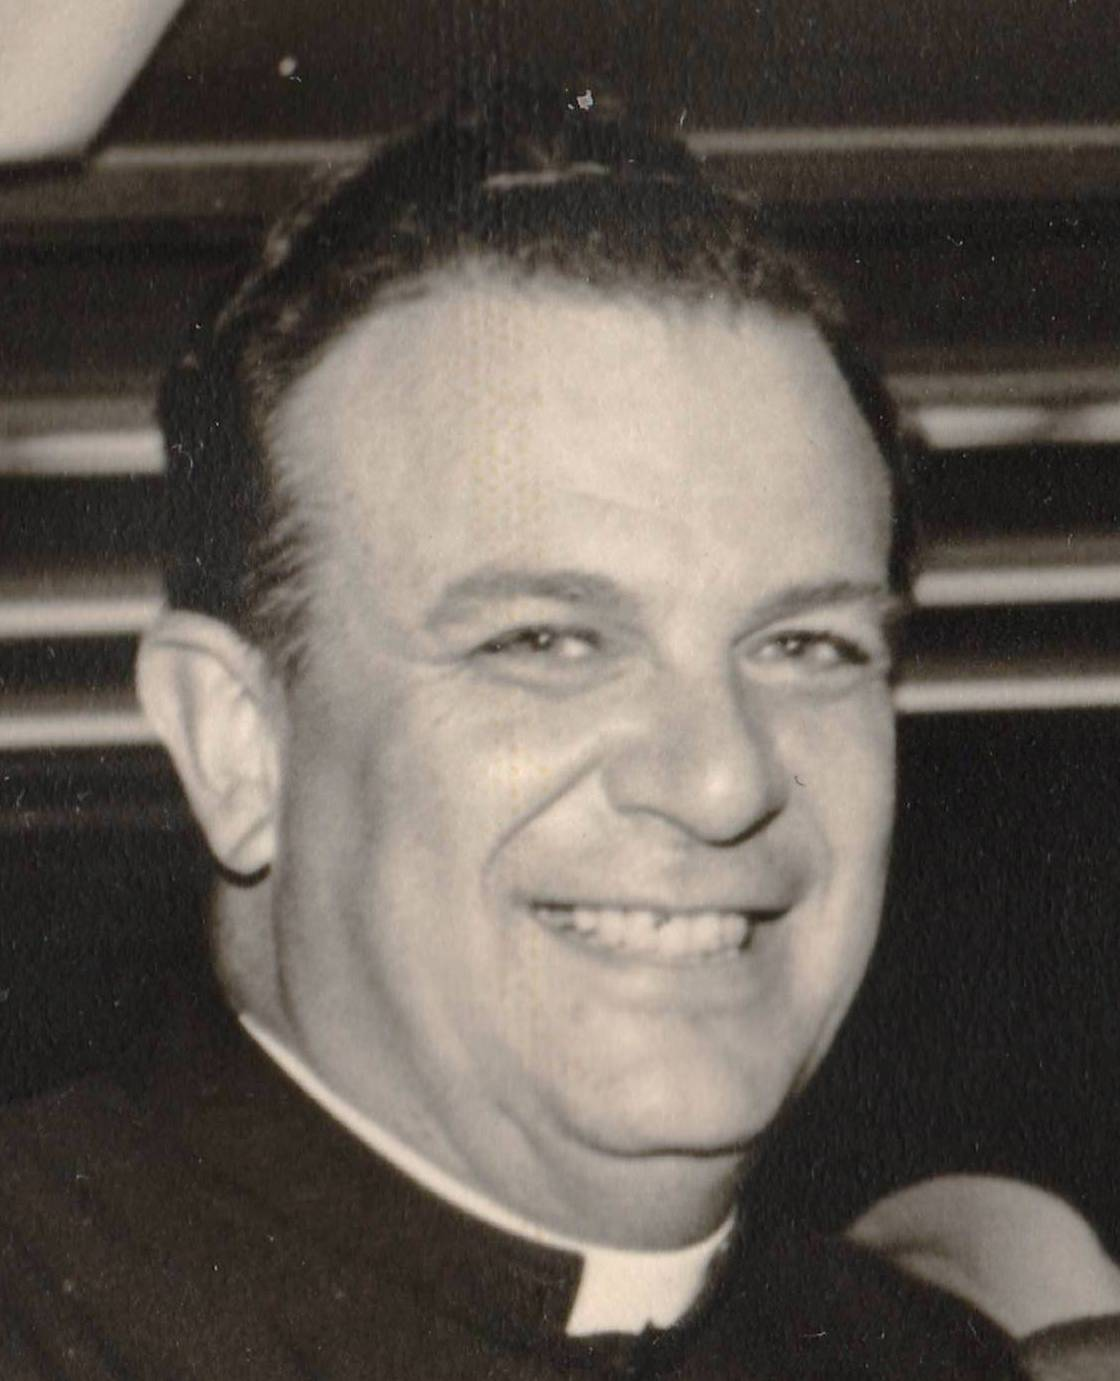 Fr. Robert Syrianey, Pastor, 1958-1970